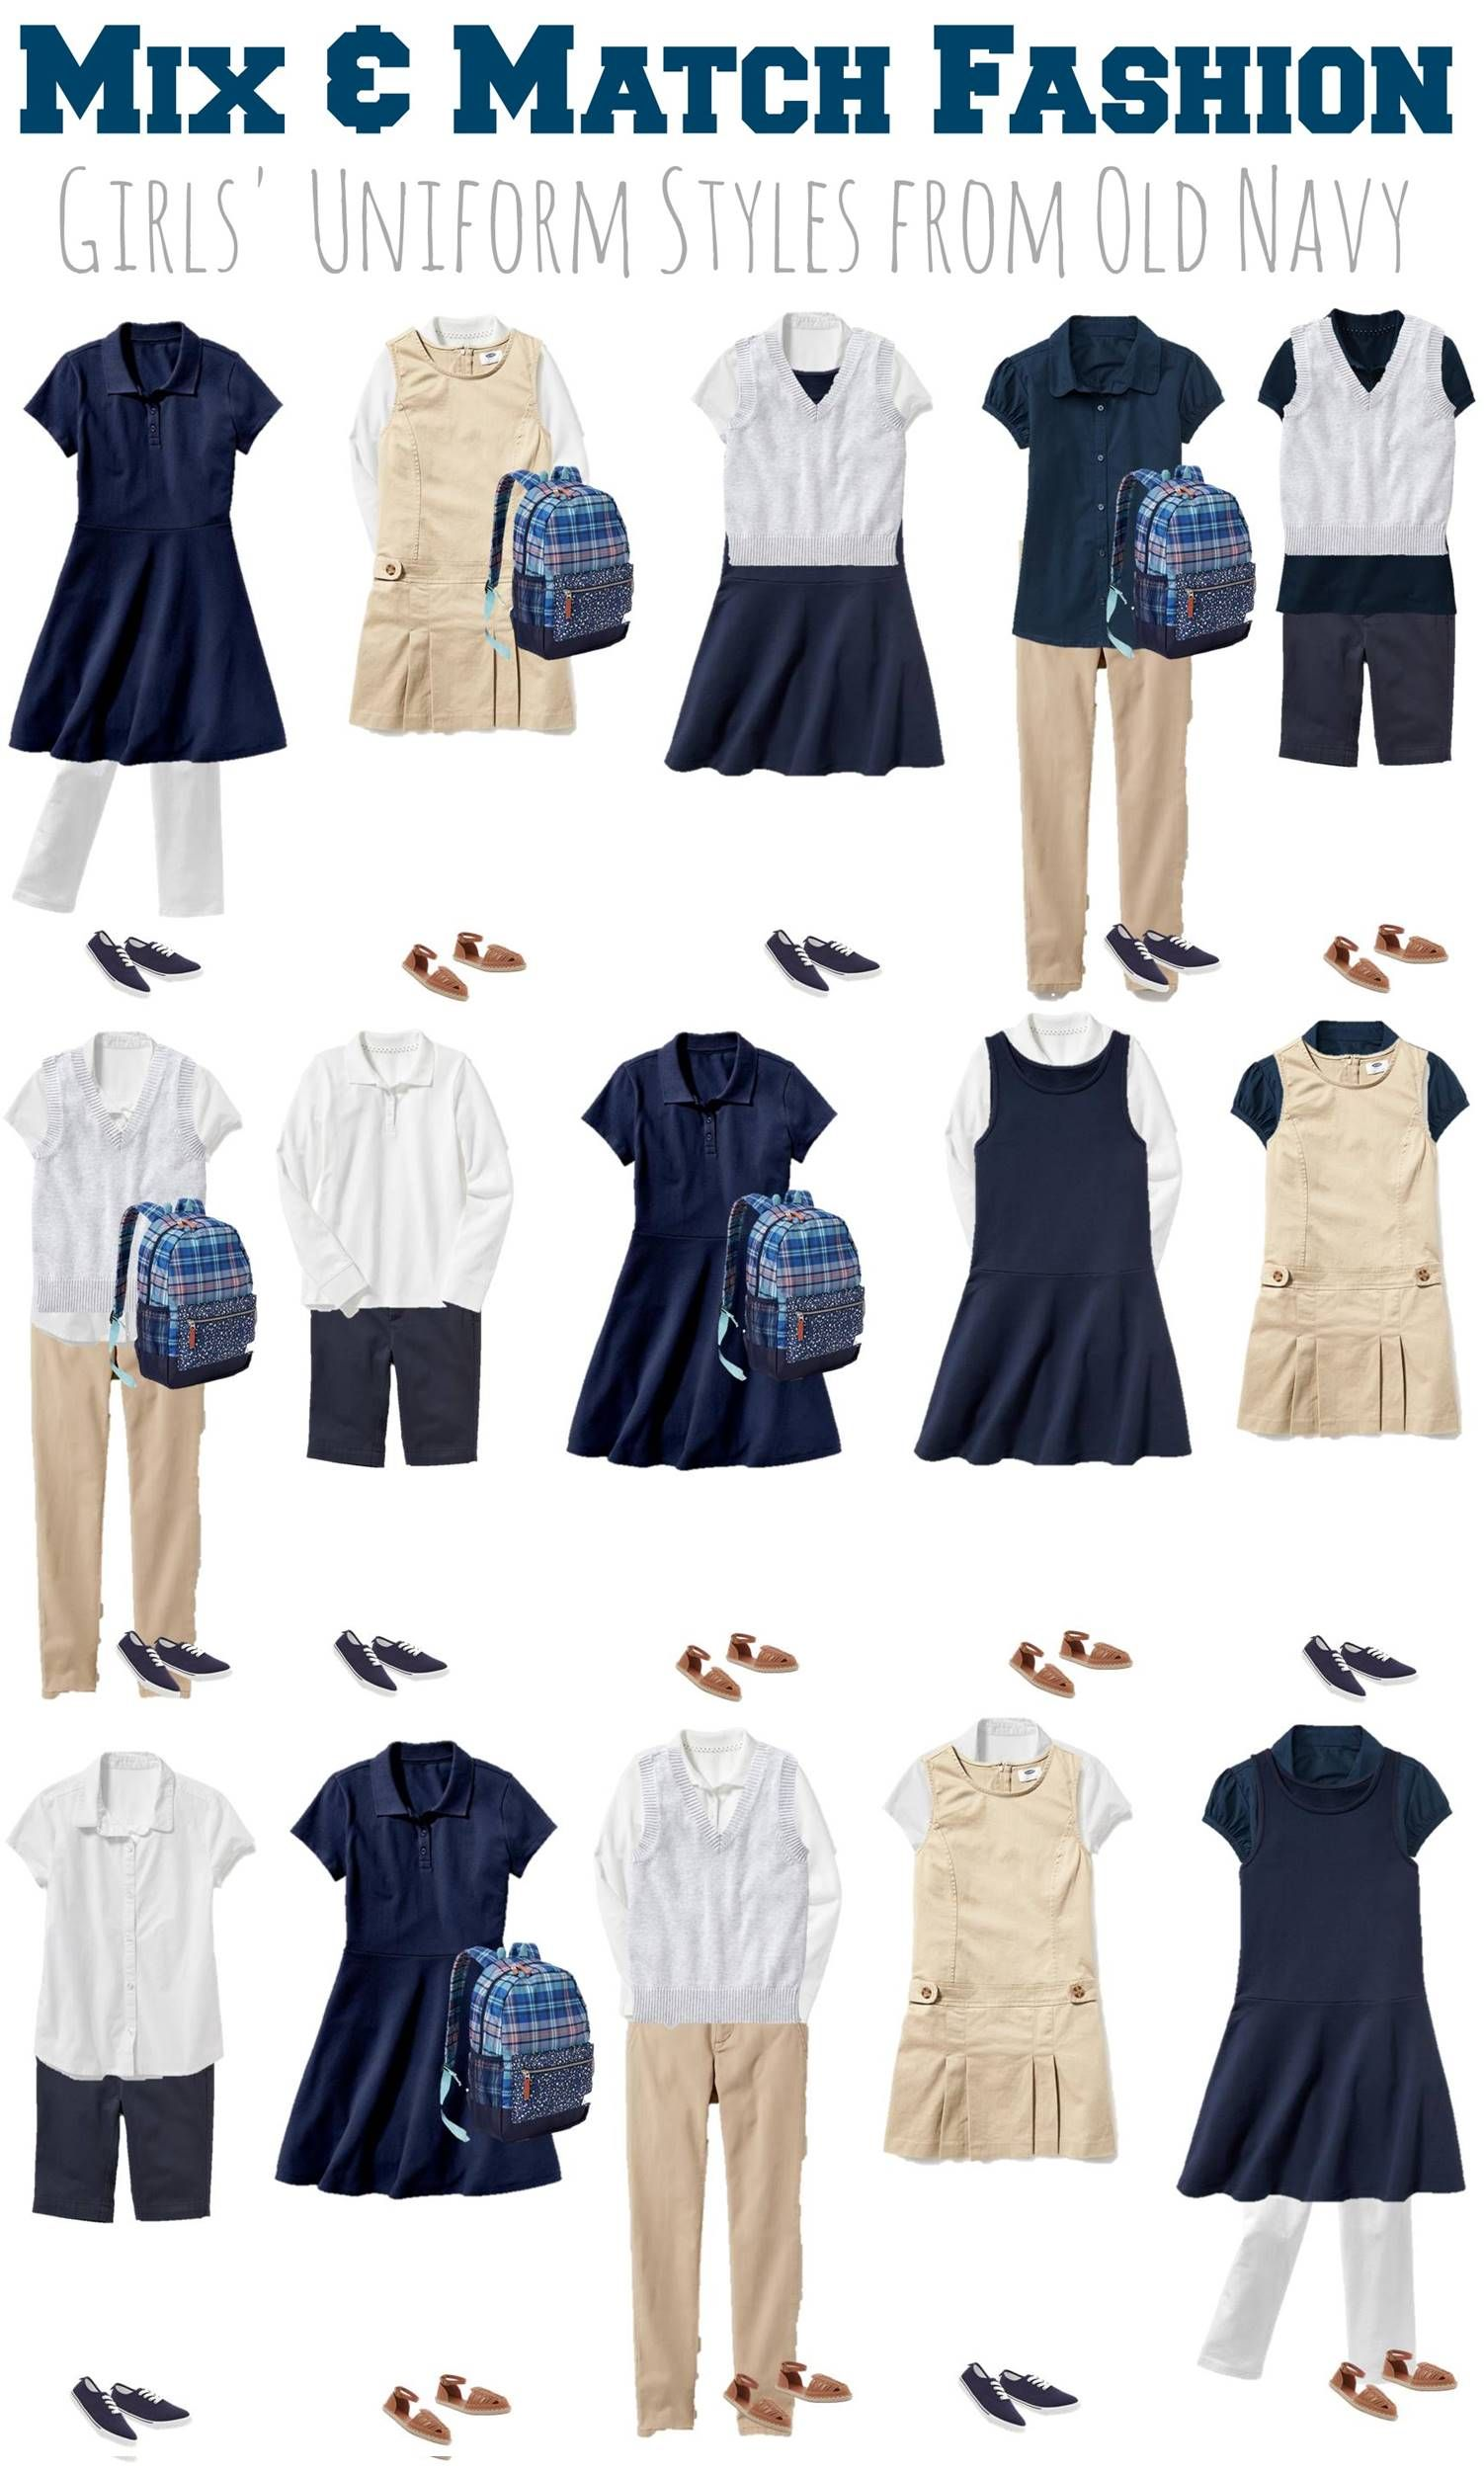 153d98648 7.27 Mix & Match Fashion - GIRLS School Uniforms from Old Navy VERTICAL